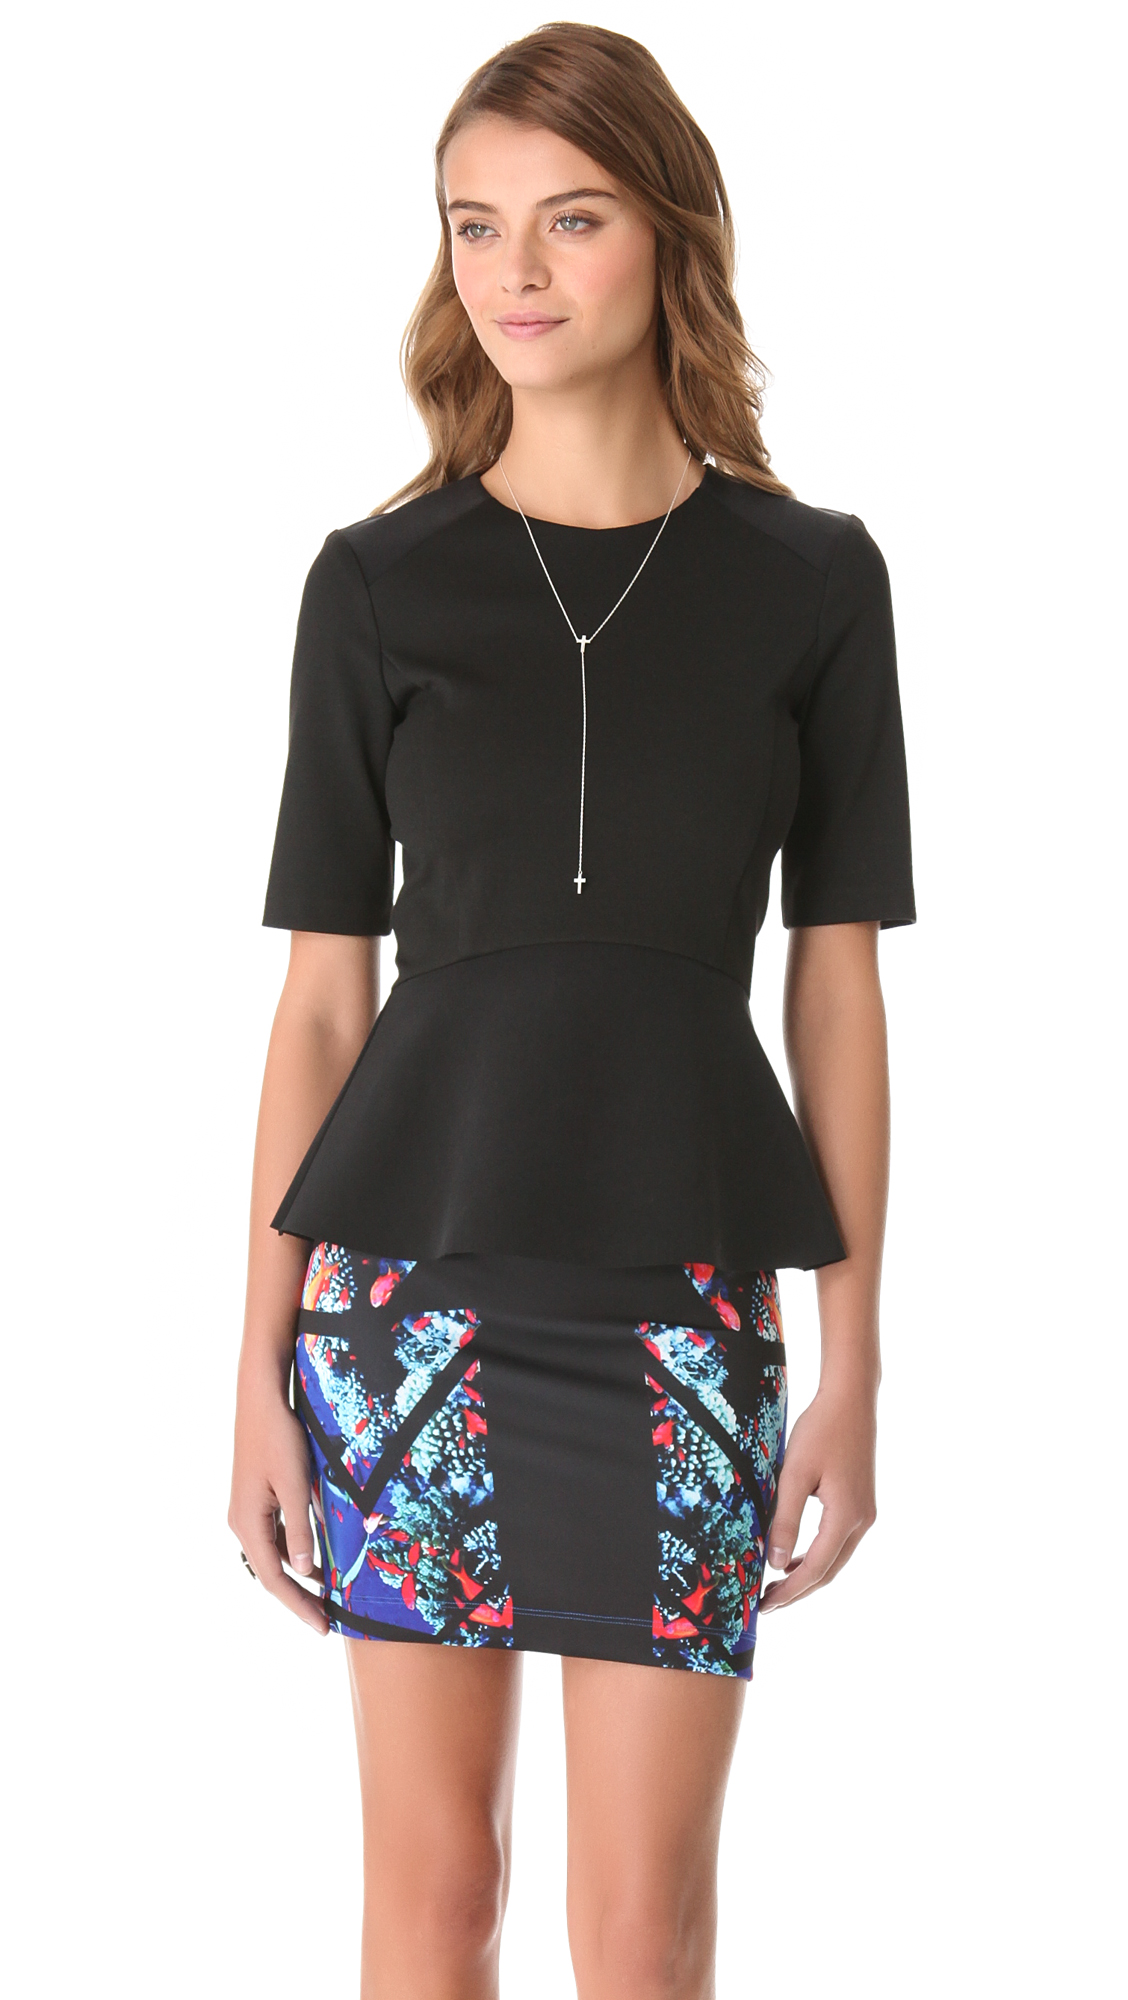 Shop for womens black peplum top online at Target. Free shipping on purchases over $35 and save 5% every day with your Target REDcard.